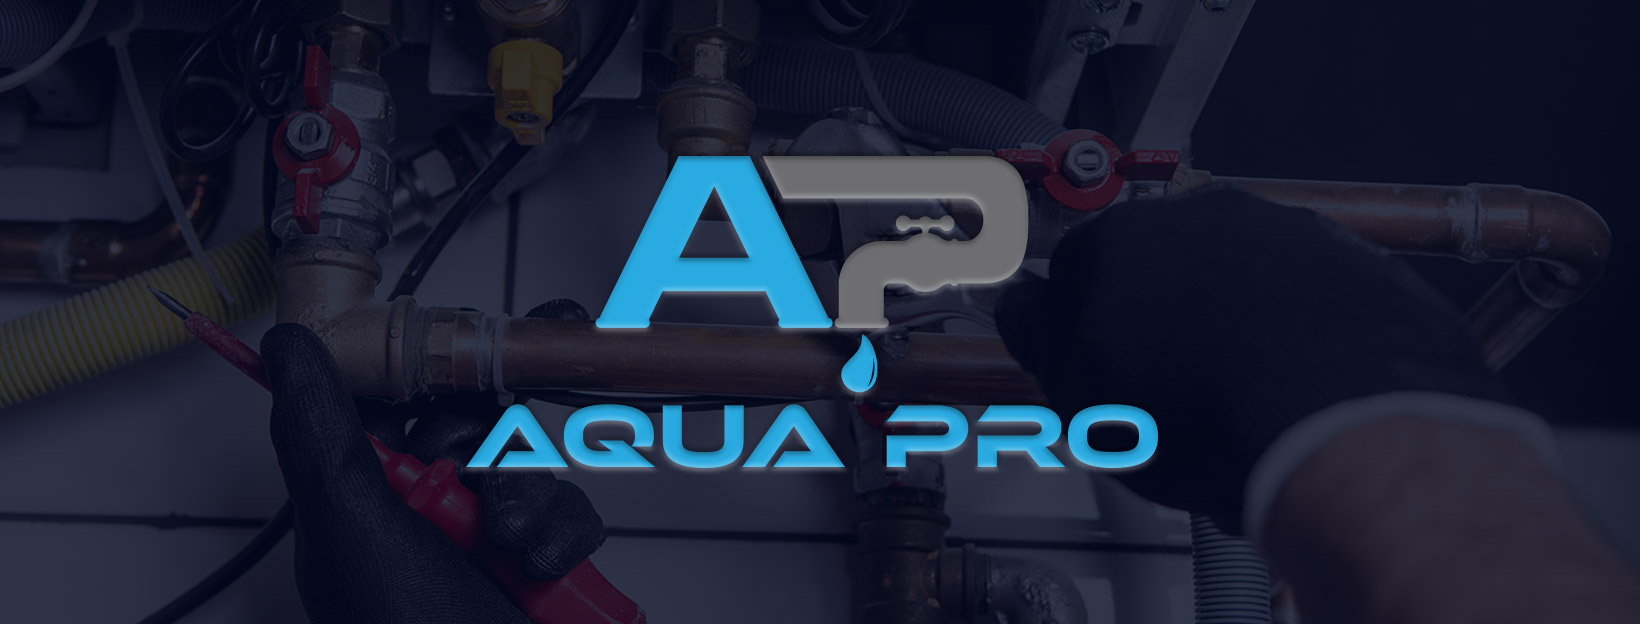 AQUA PRO PLUMBING CONTRACTOR / WATER DAMAGE RESTORATION reviews | Plumbing at 13327 SW 135th Ave - Miami FL